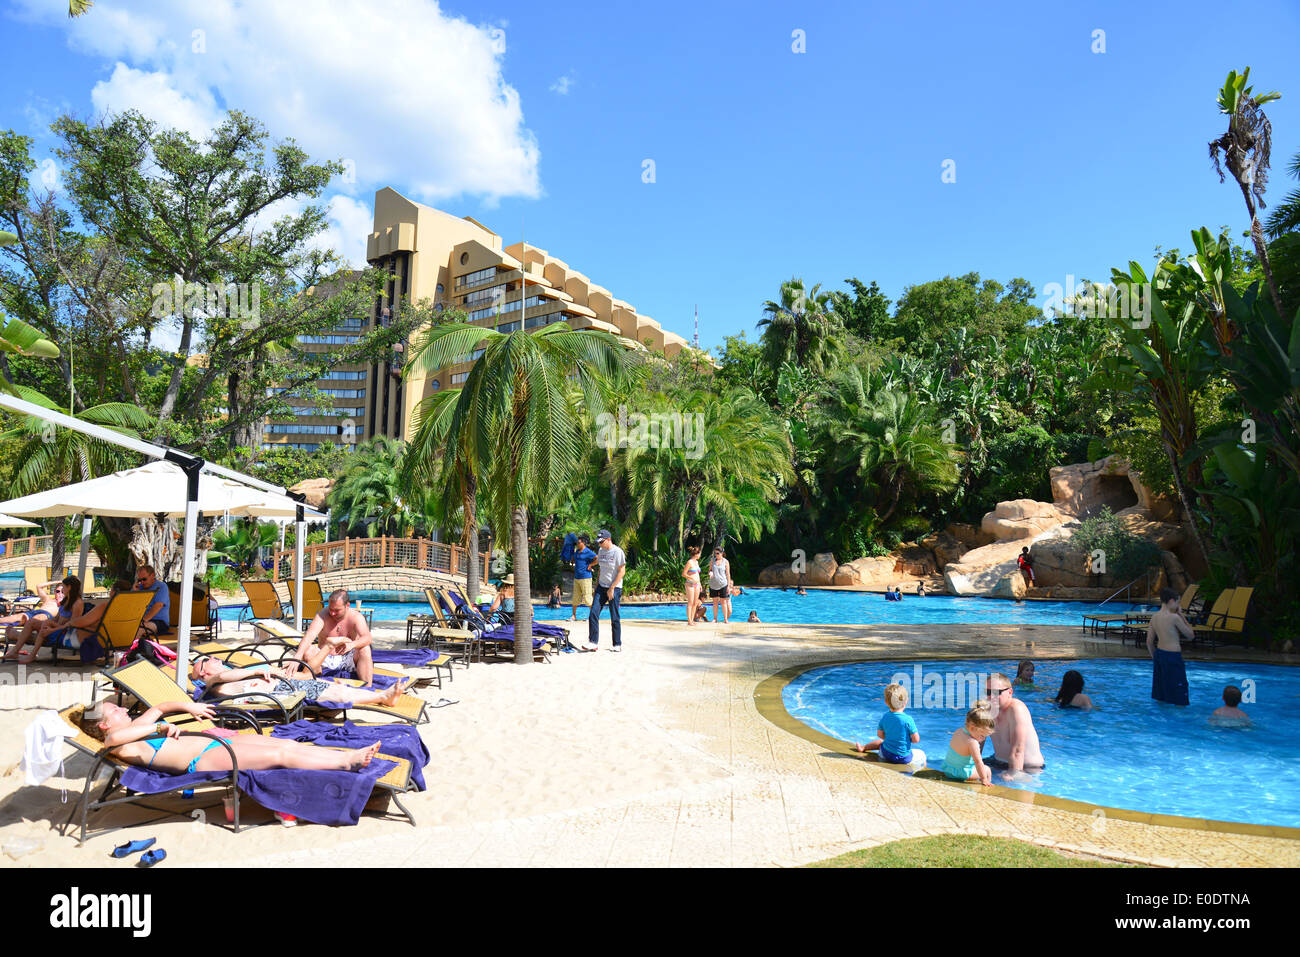 Swimming Pool At Cascades Hotel, Sun City Holiday Resort, Pilanesberg,  North West Province, Republic Of South Africa